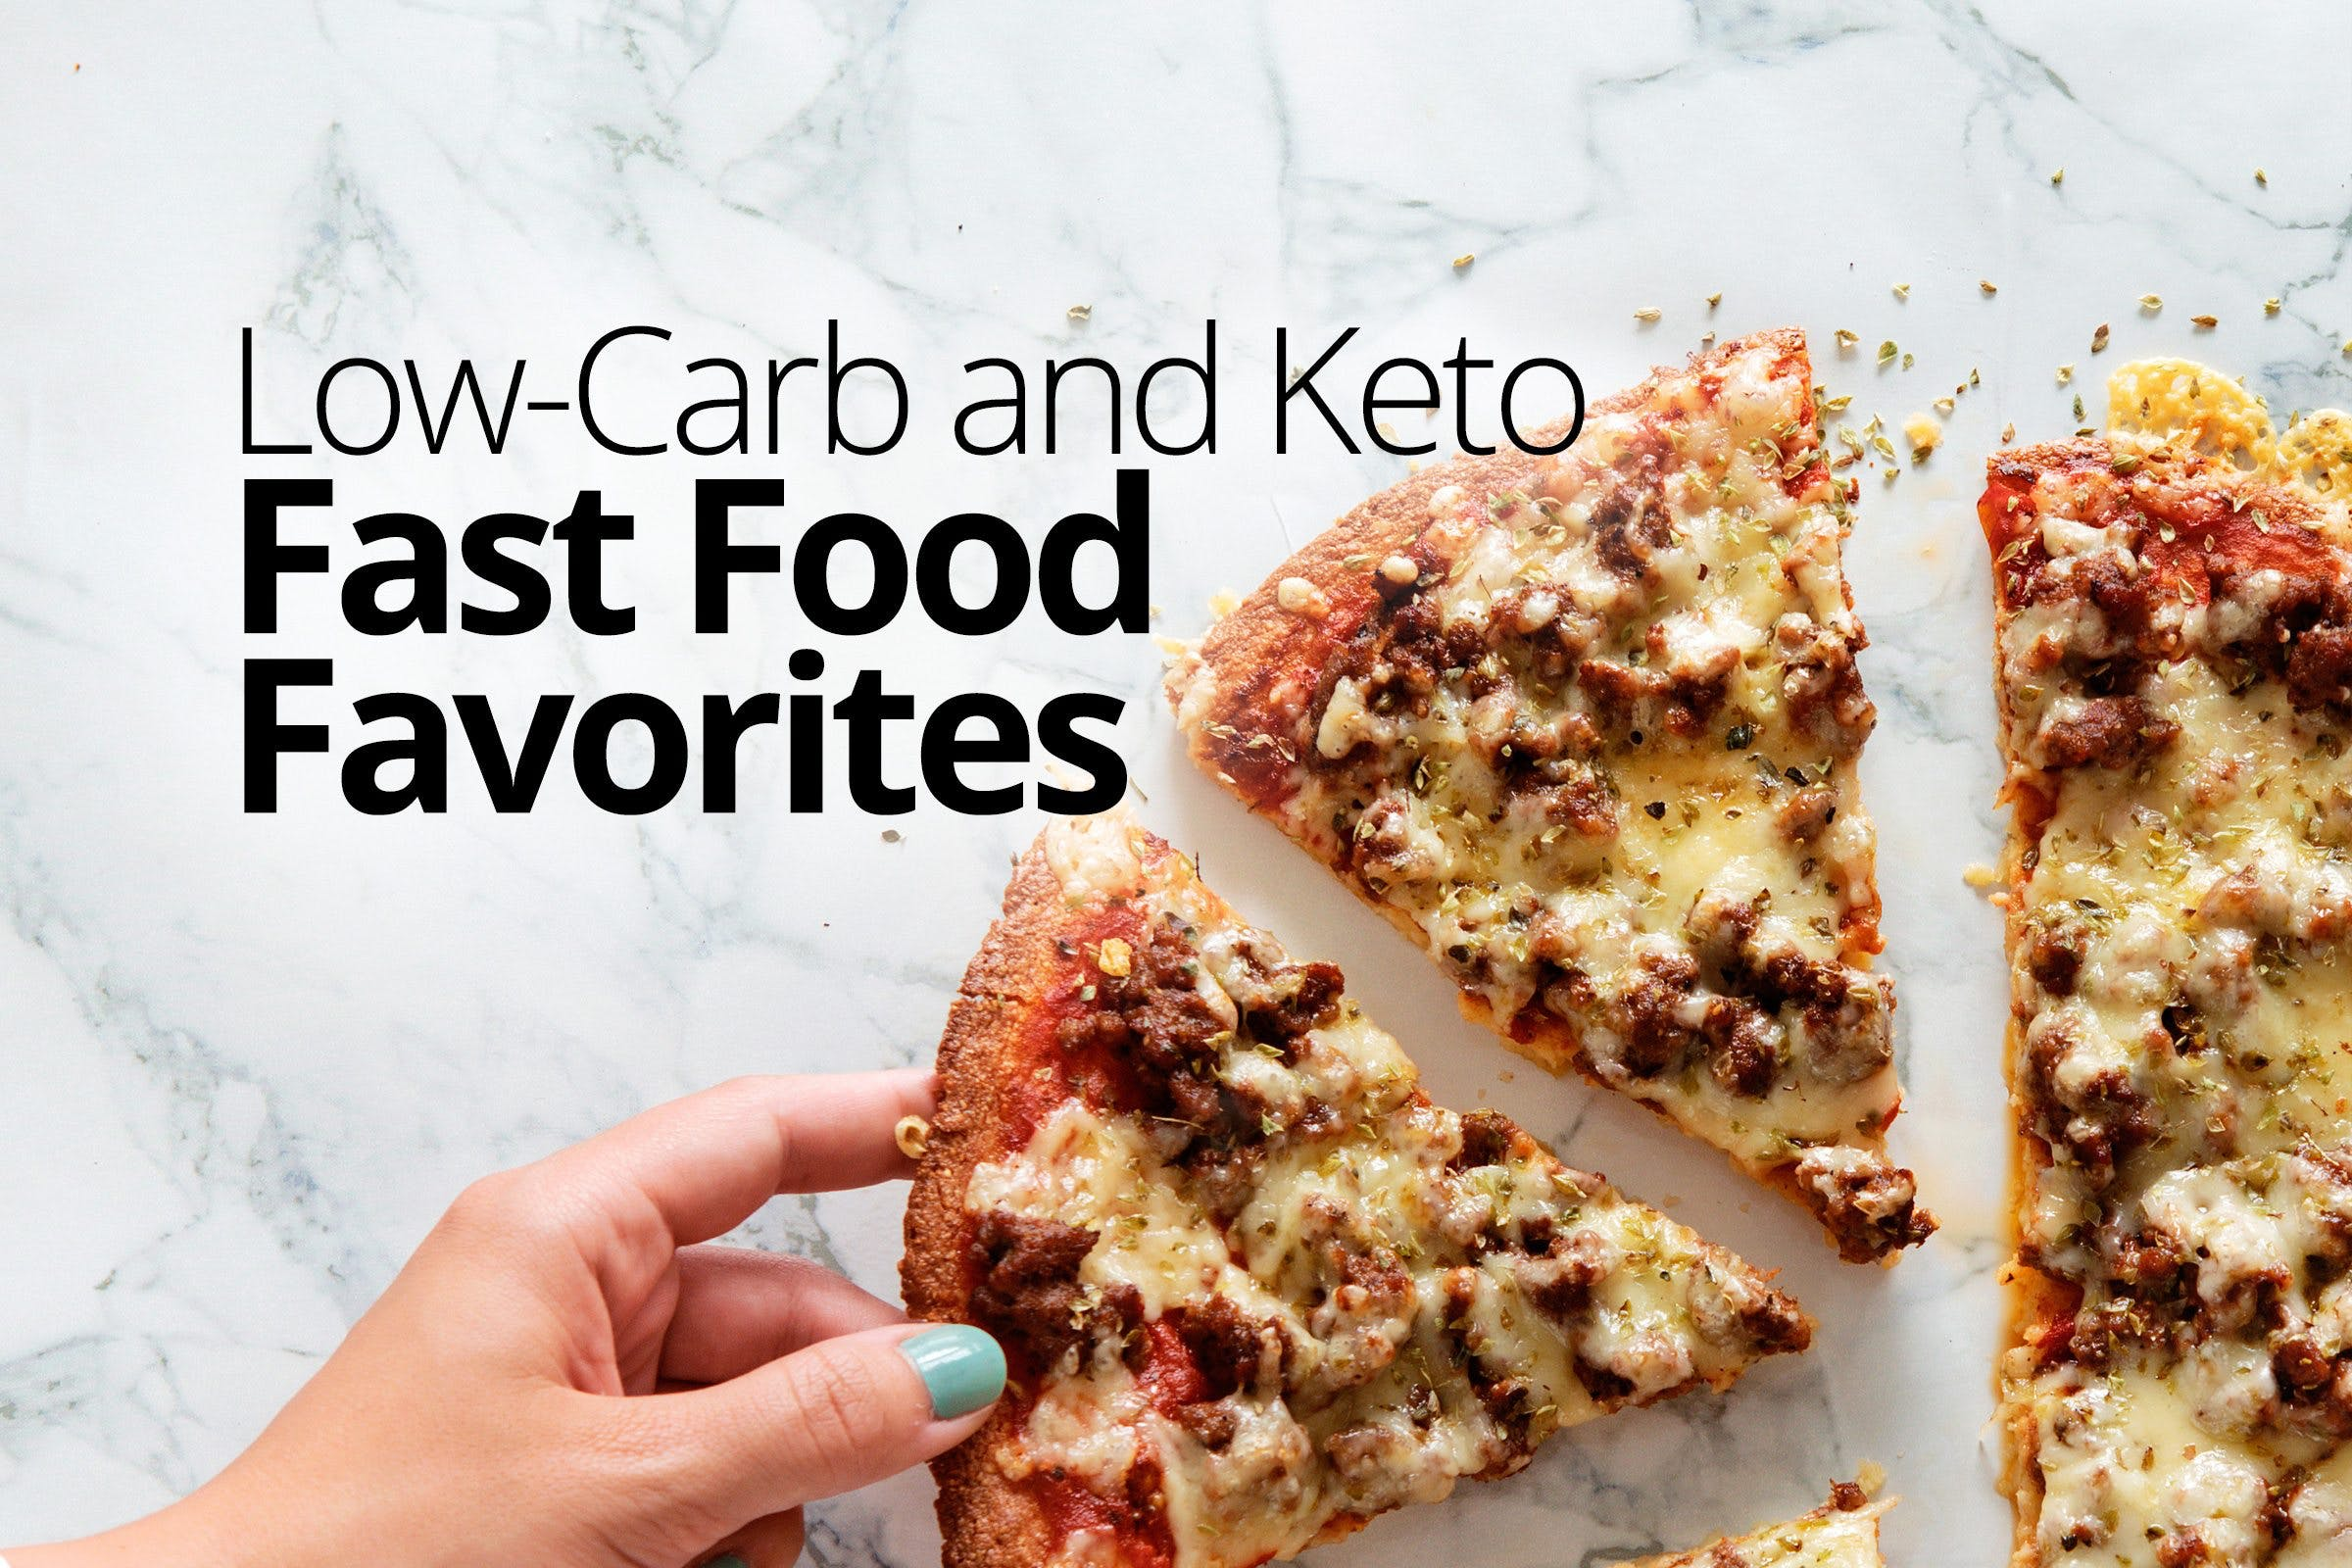 Low-carb and keto fast food favorites